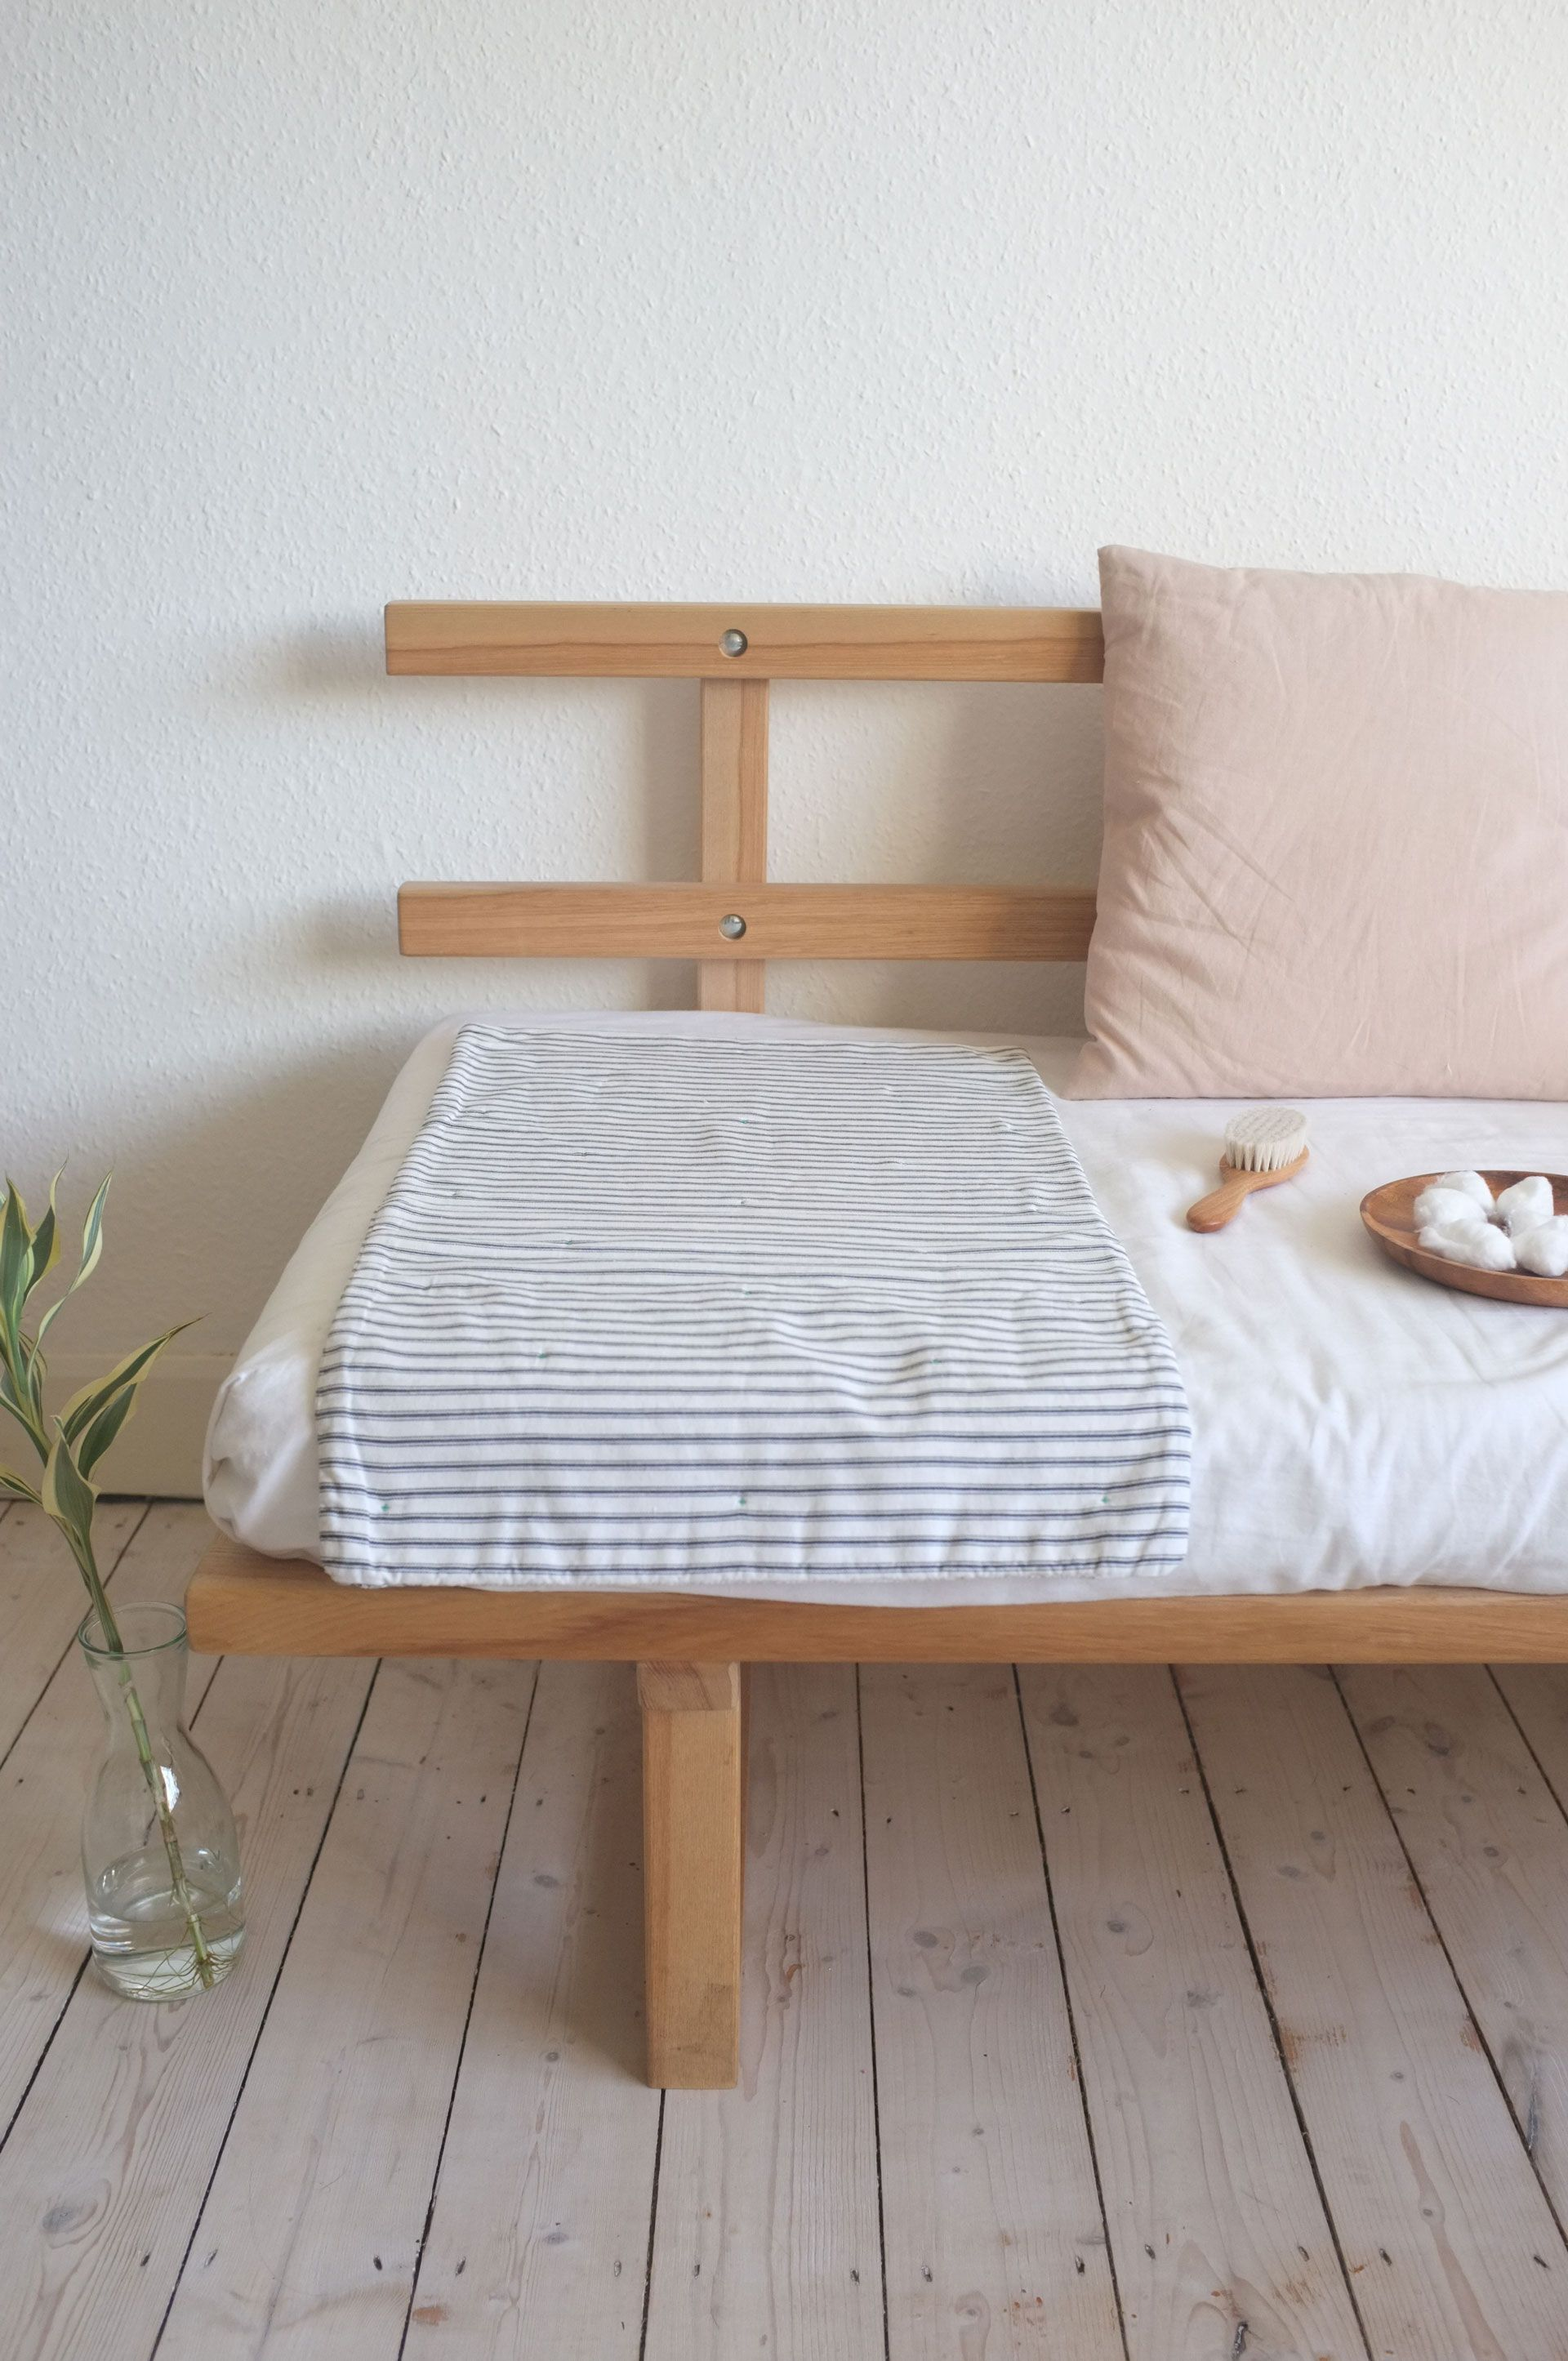 Day bed idea simple and light for a small room with storage